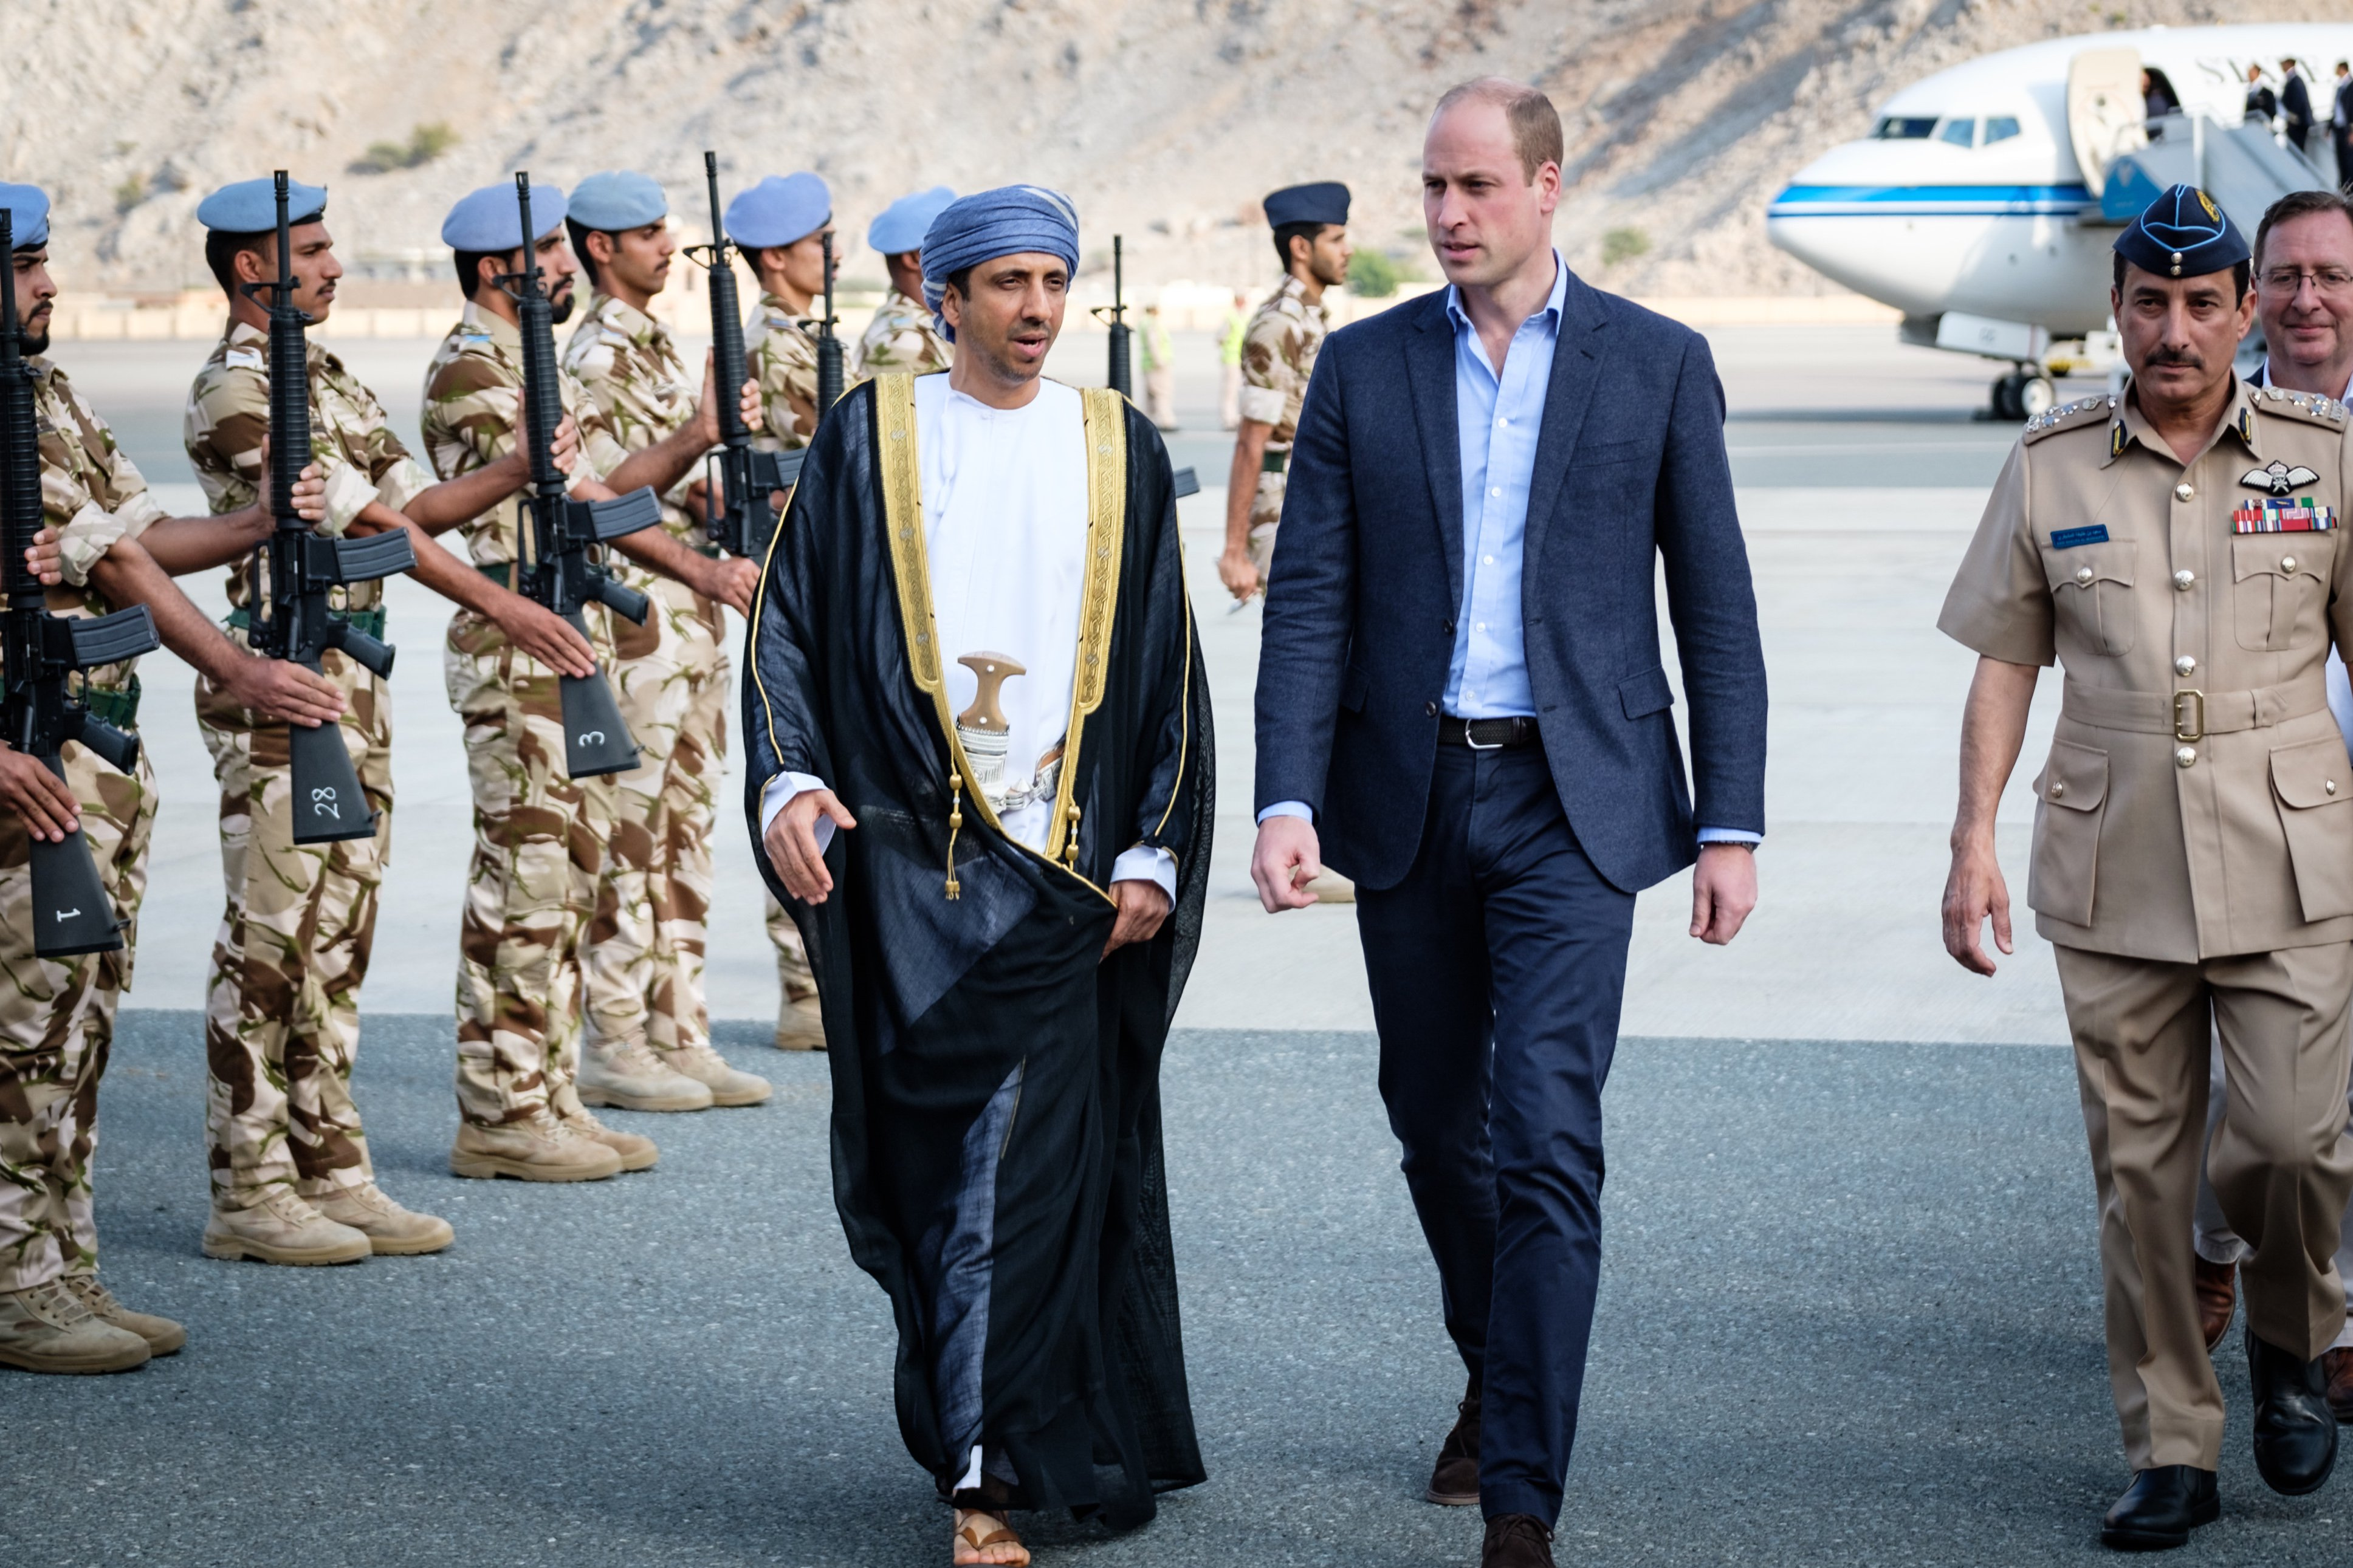 Prince William arrives in Oman